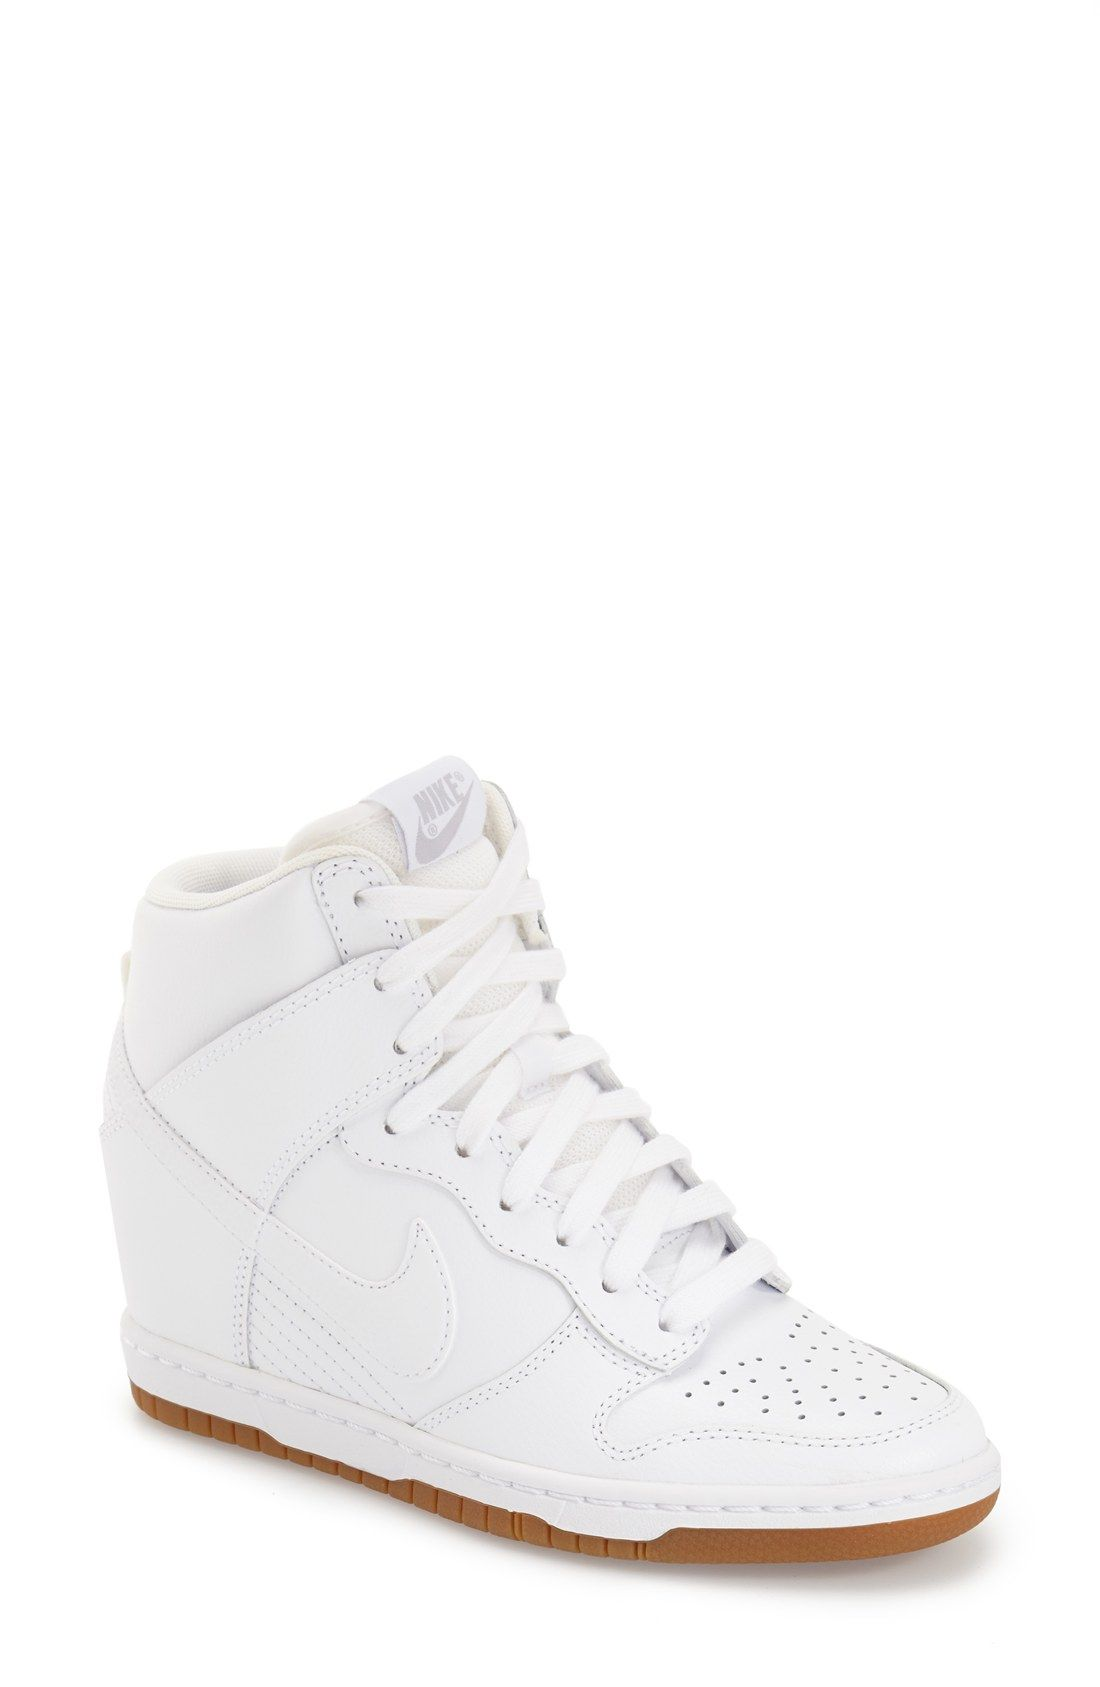 Nike Dunk Sky Hi - Essential Wedge Sneaker in White ...